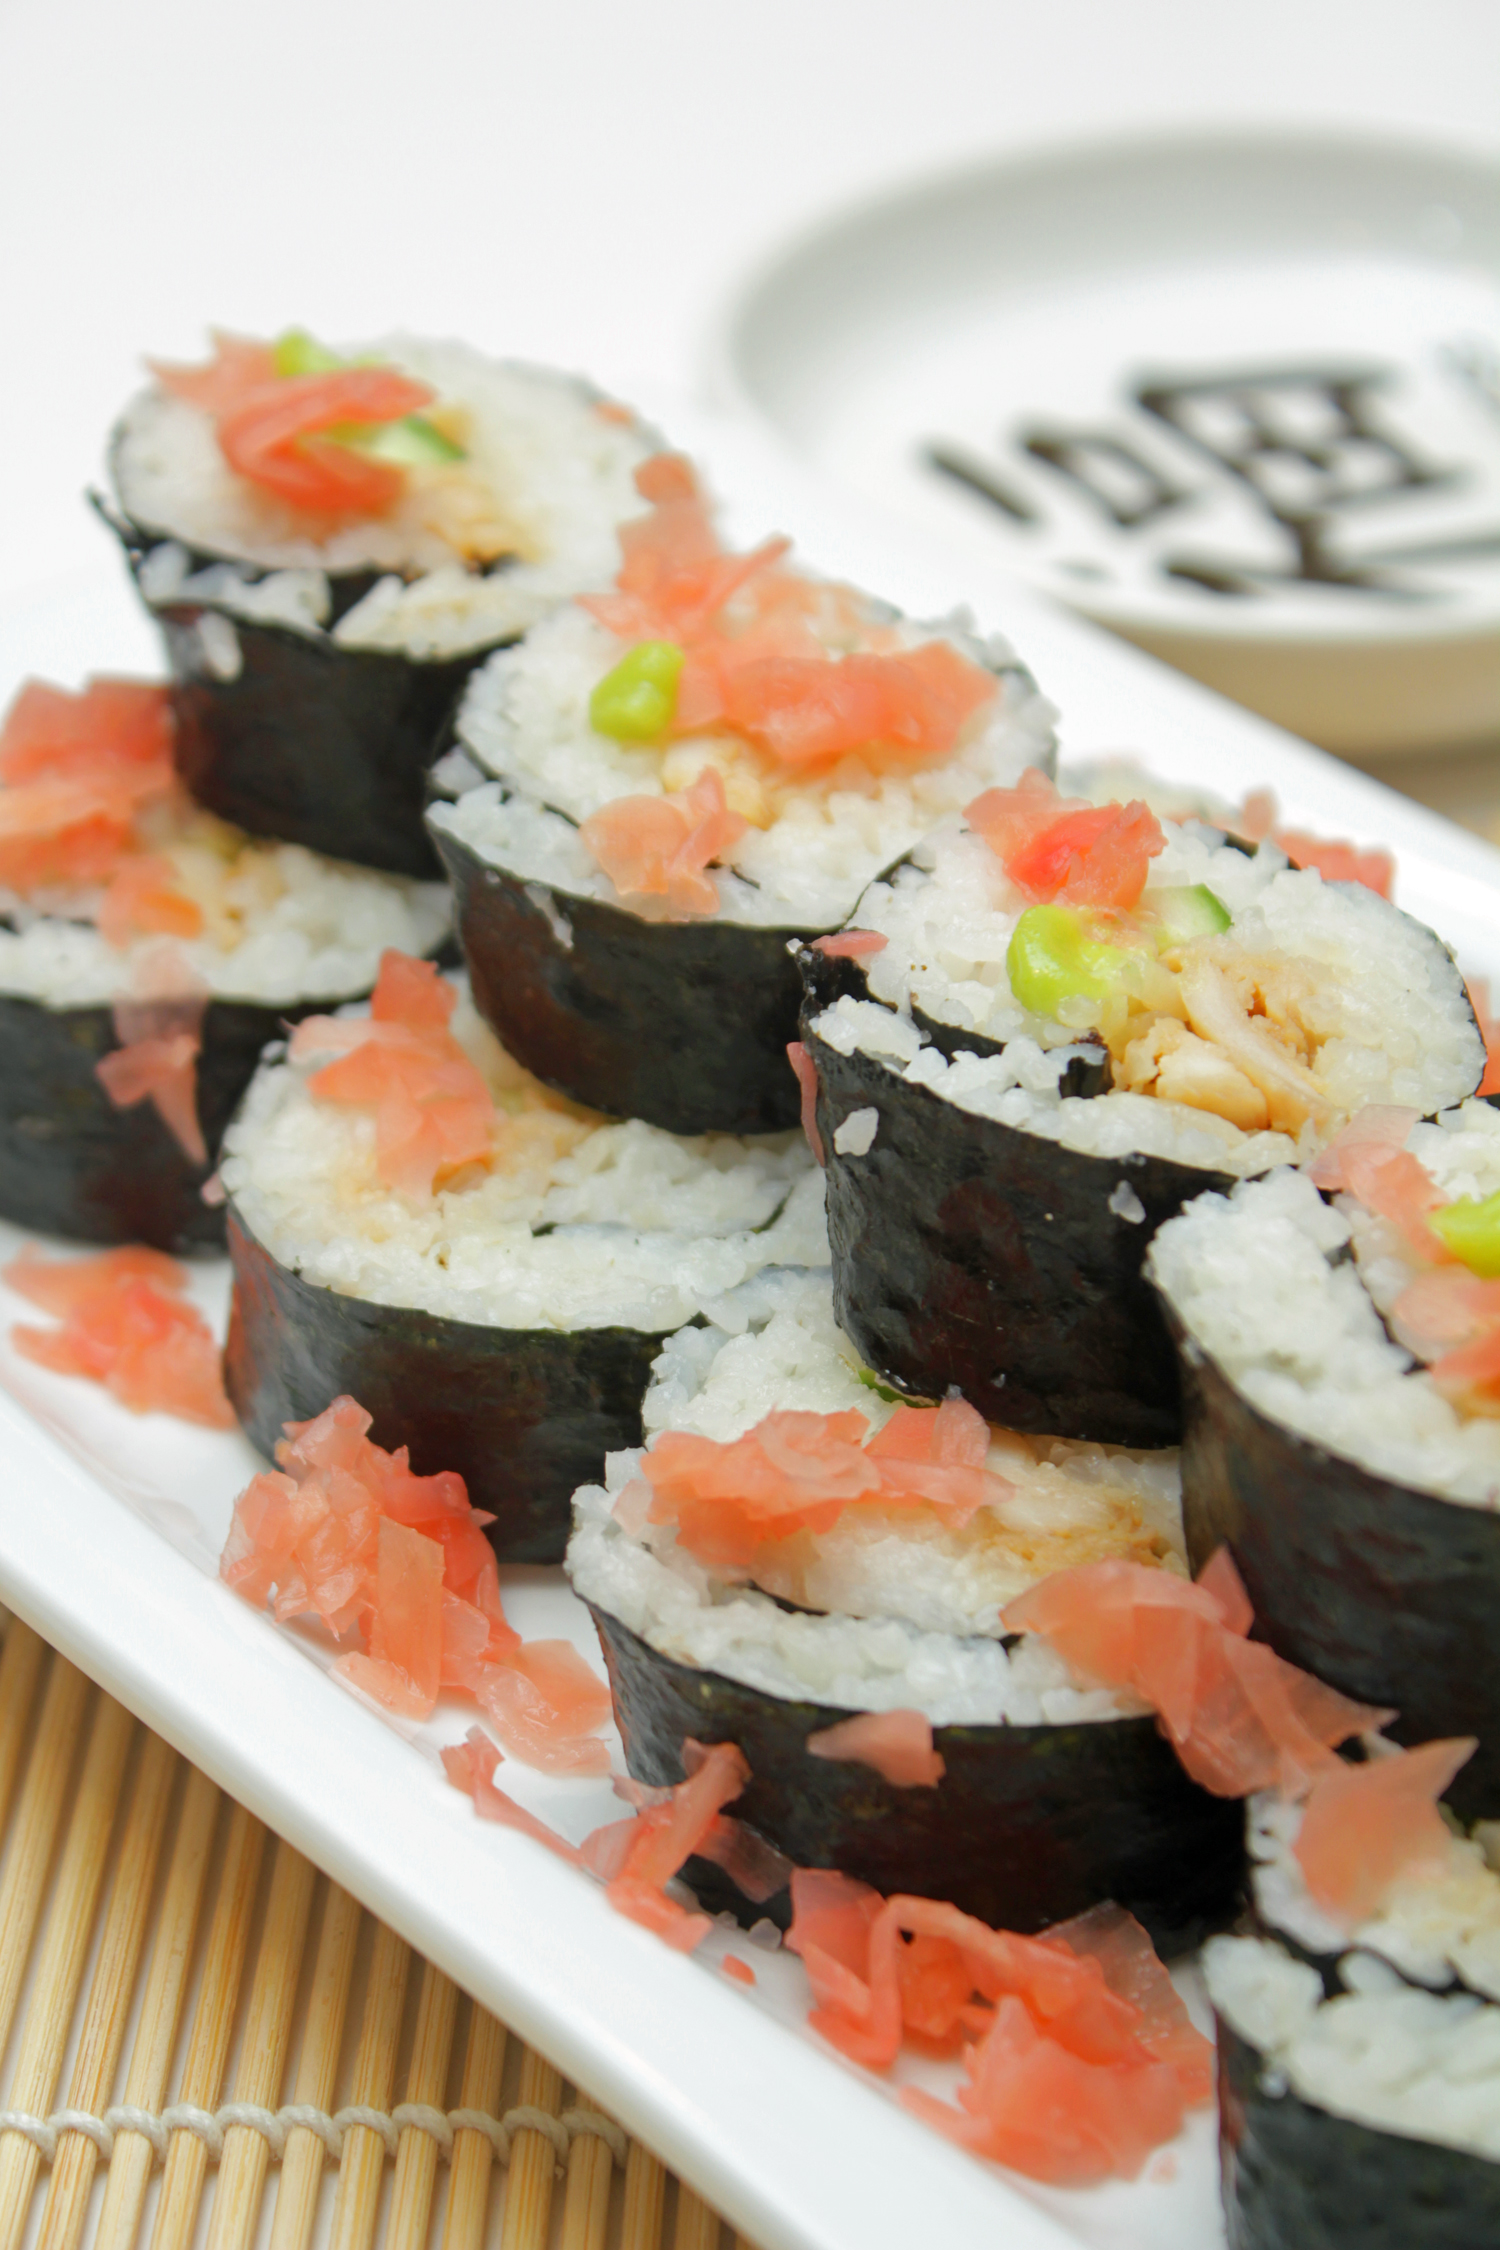 //www.gameandfishmag.com/files/best-thanksgiving-recipes/gf-pheasmusubi.jpg